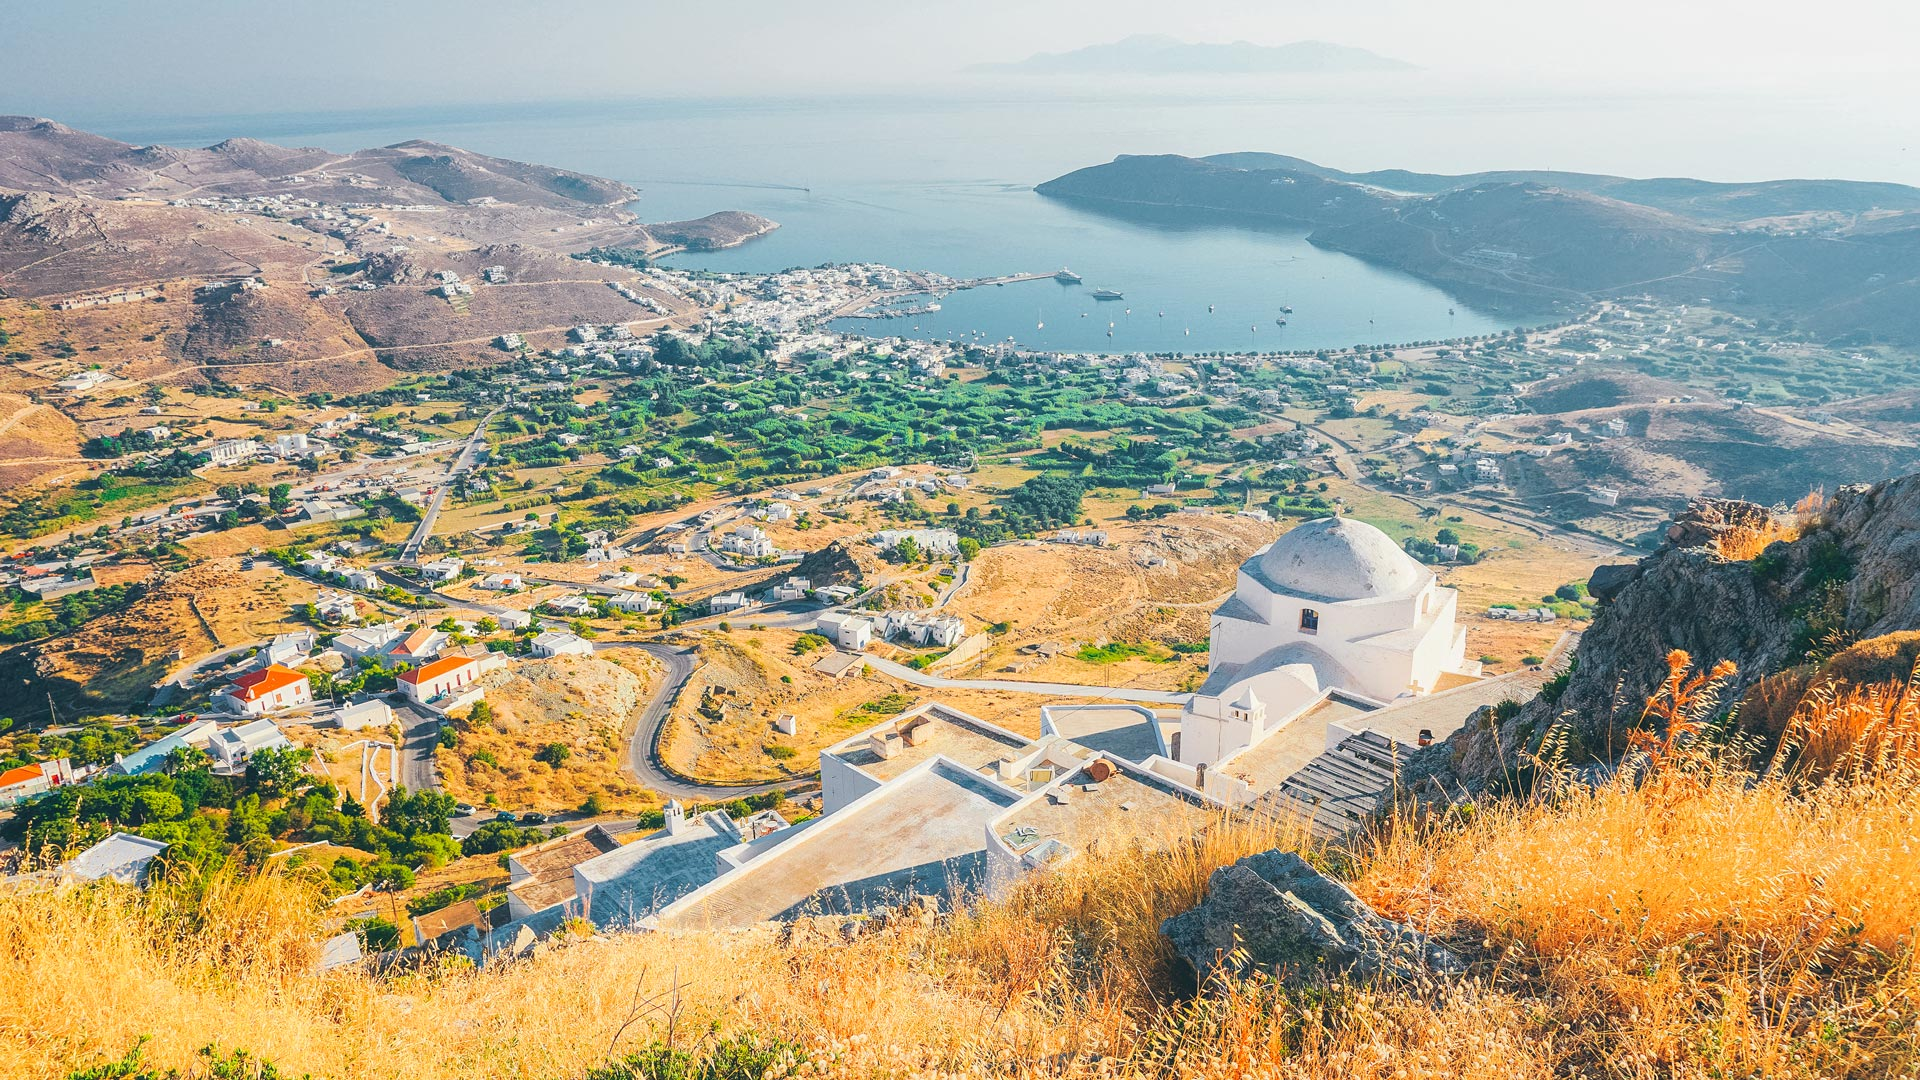 From the beautiful chapel of Agios Konstantinos nearby, you can look out beyond Livadi